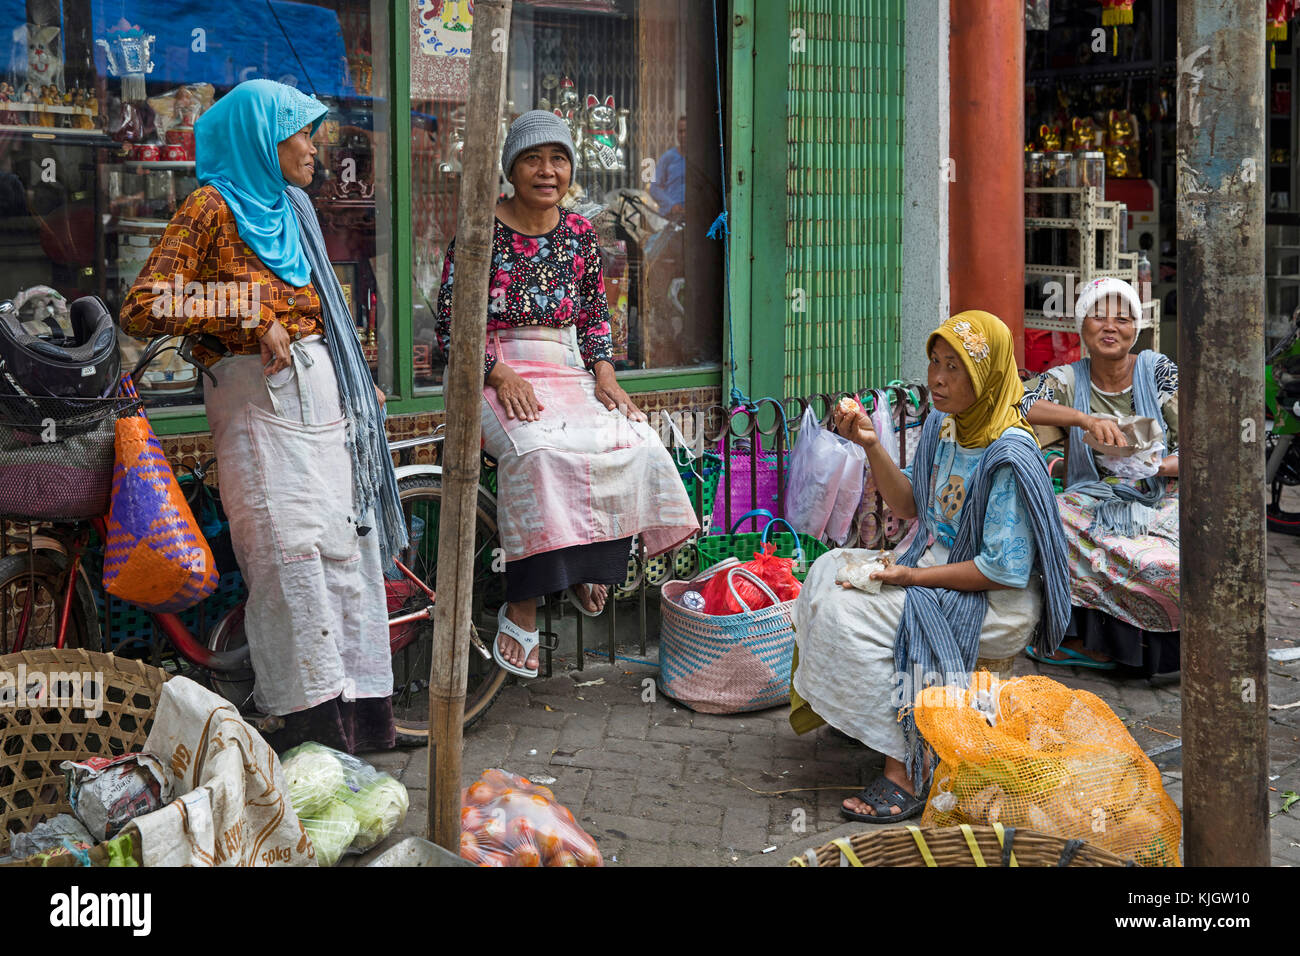 Javanese women chatting at market in Chinatown / Kampung Pecinan Semawis of the city Semarang, Central Java, Indonesia - Stock Image